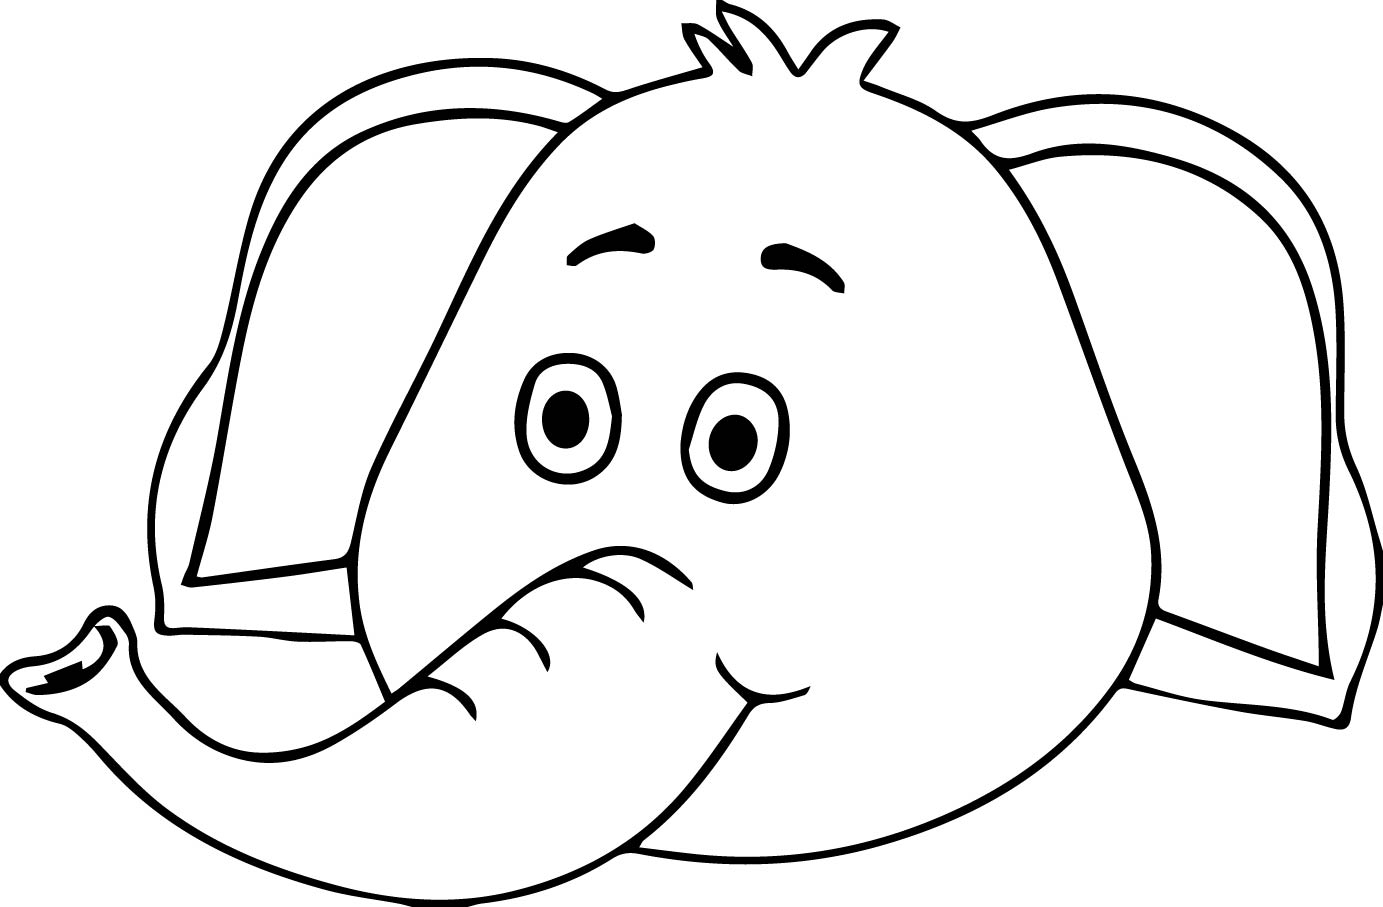 1383x907 Elephant Face Coloring Pages